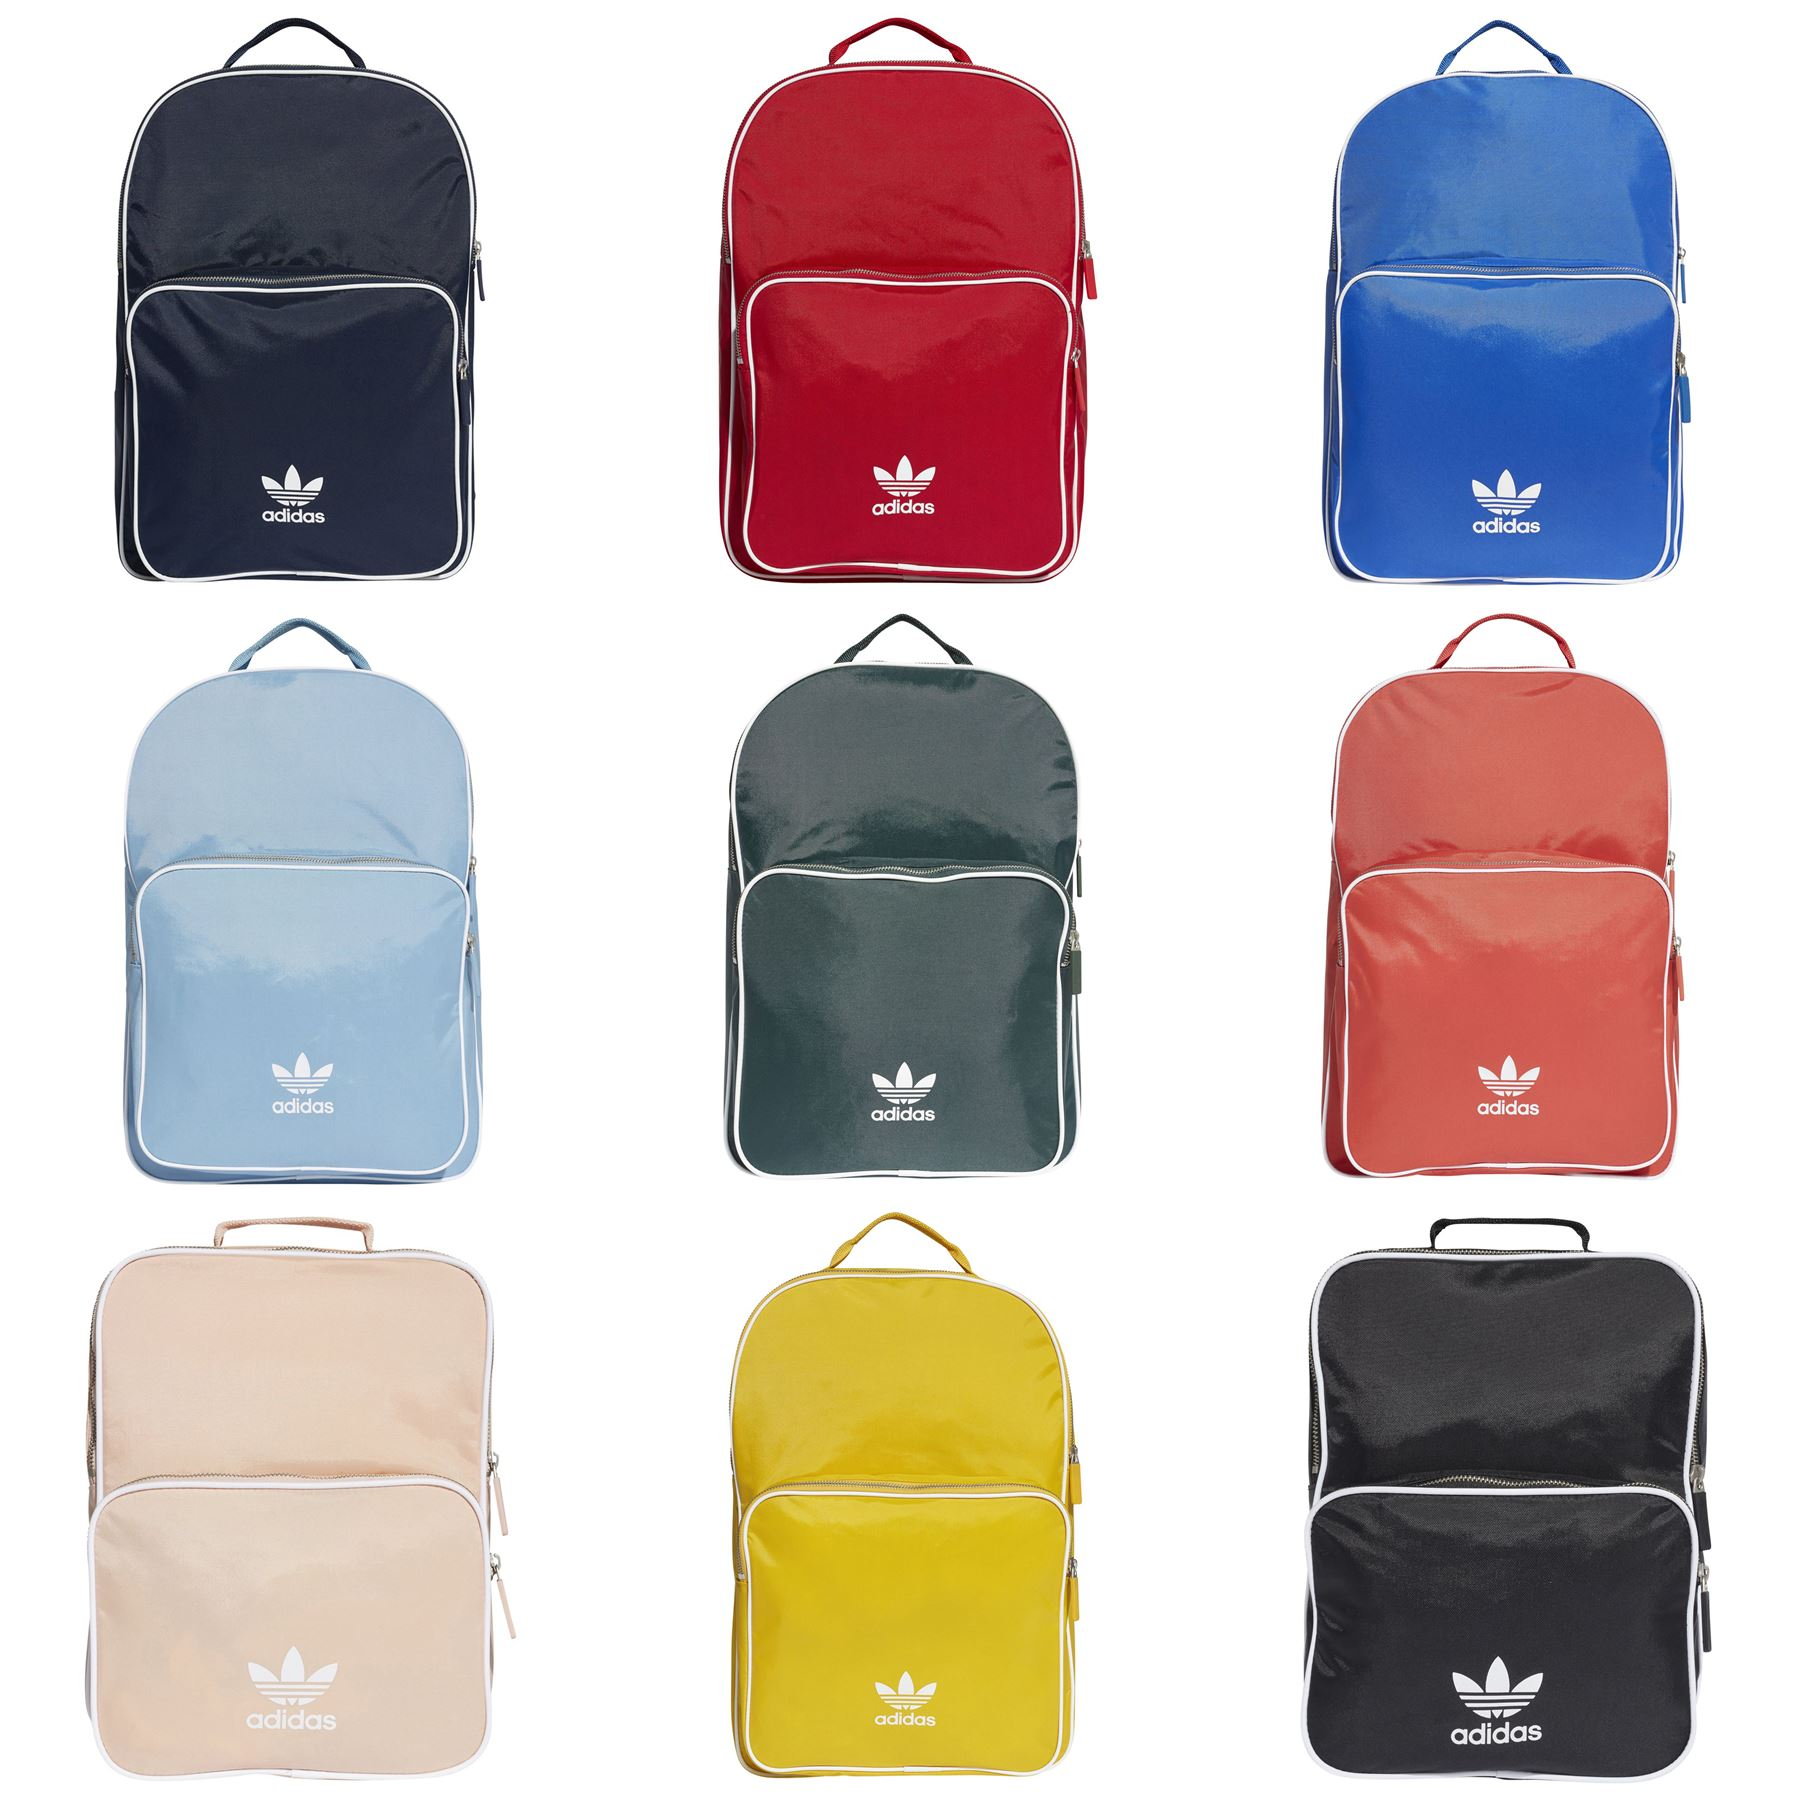 817893a599dc Details about adidas ORIGINALS ADICOLOR BACKPACK BAG UNIVERSITY COLLEGE  RETRO TREFOIL SCHOOL